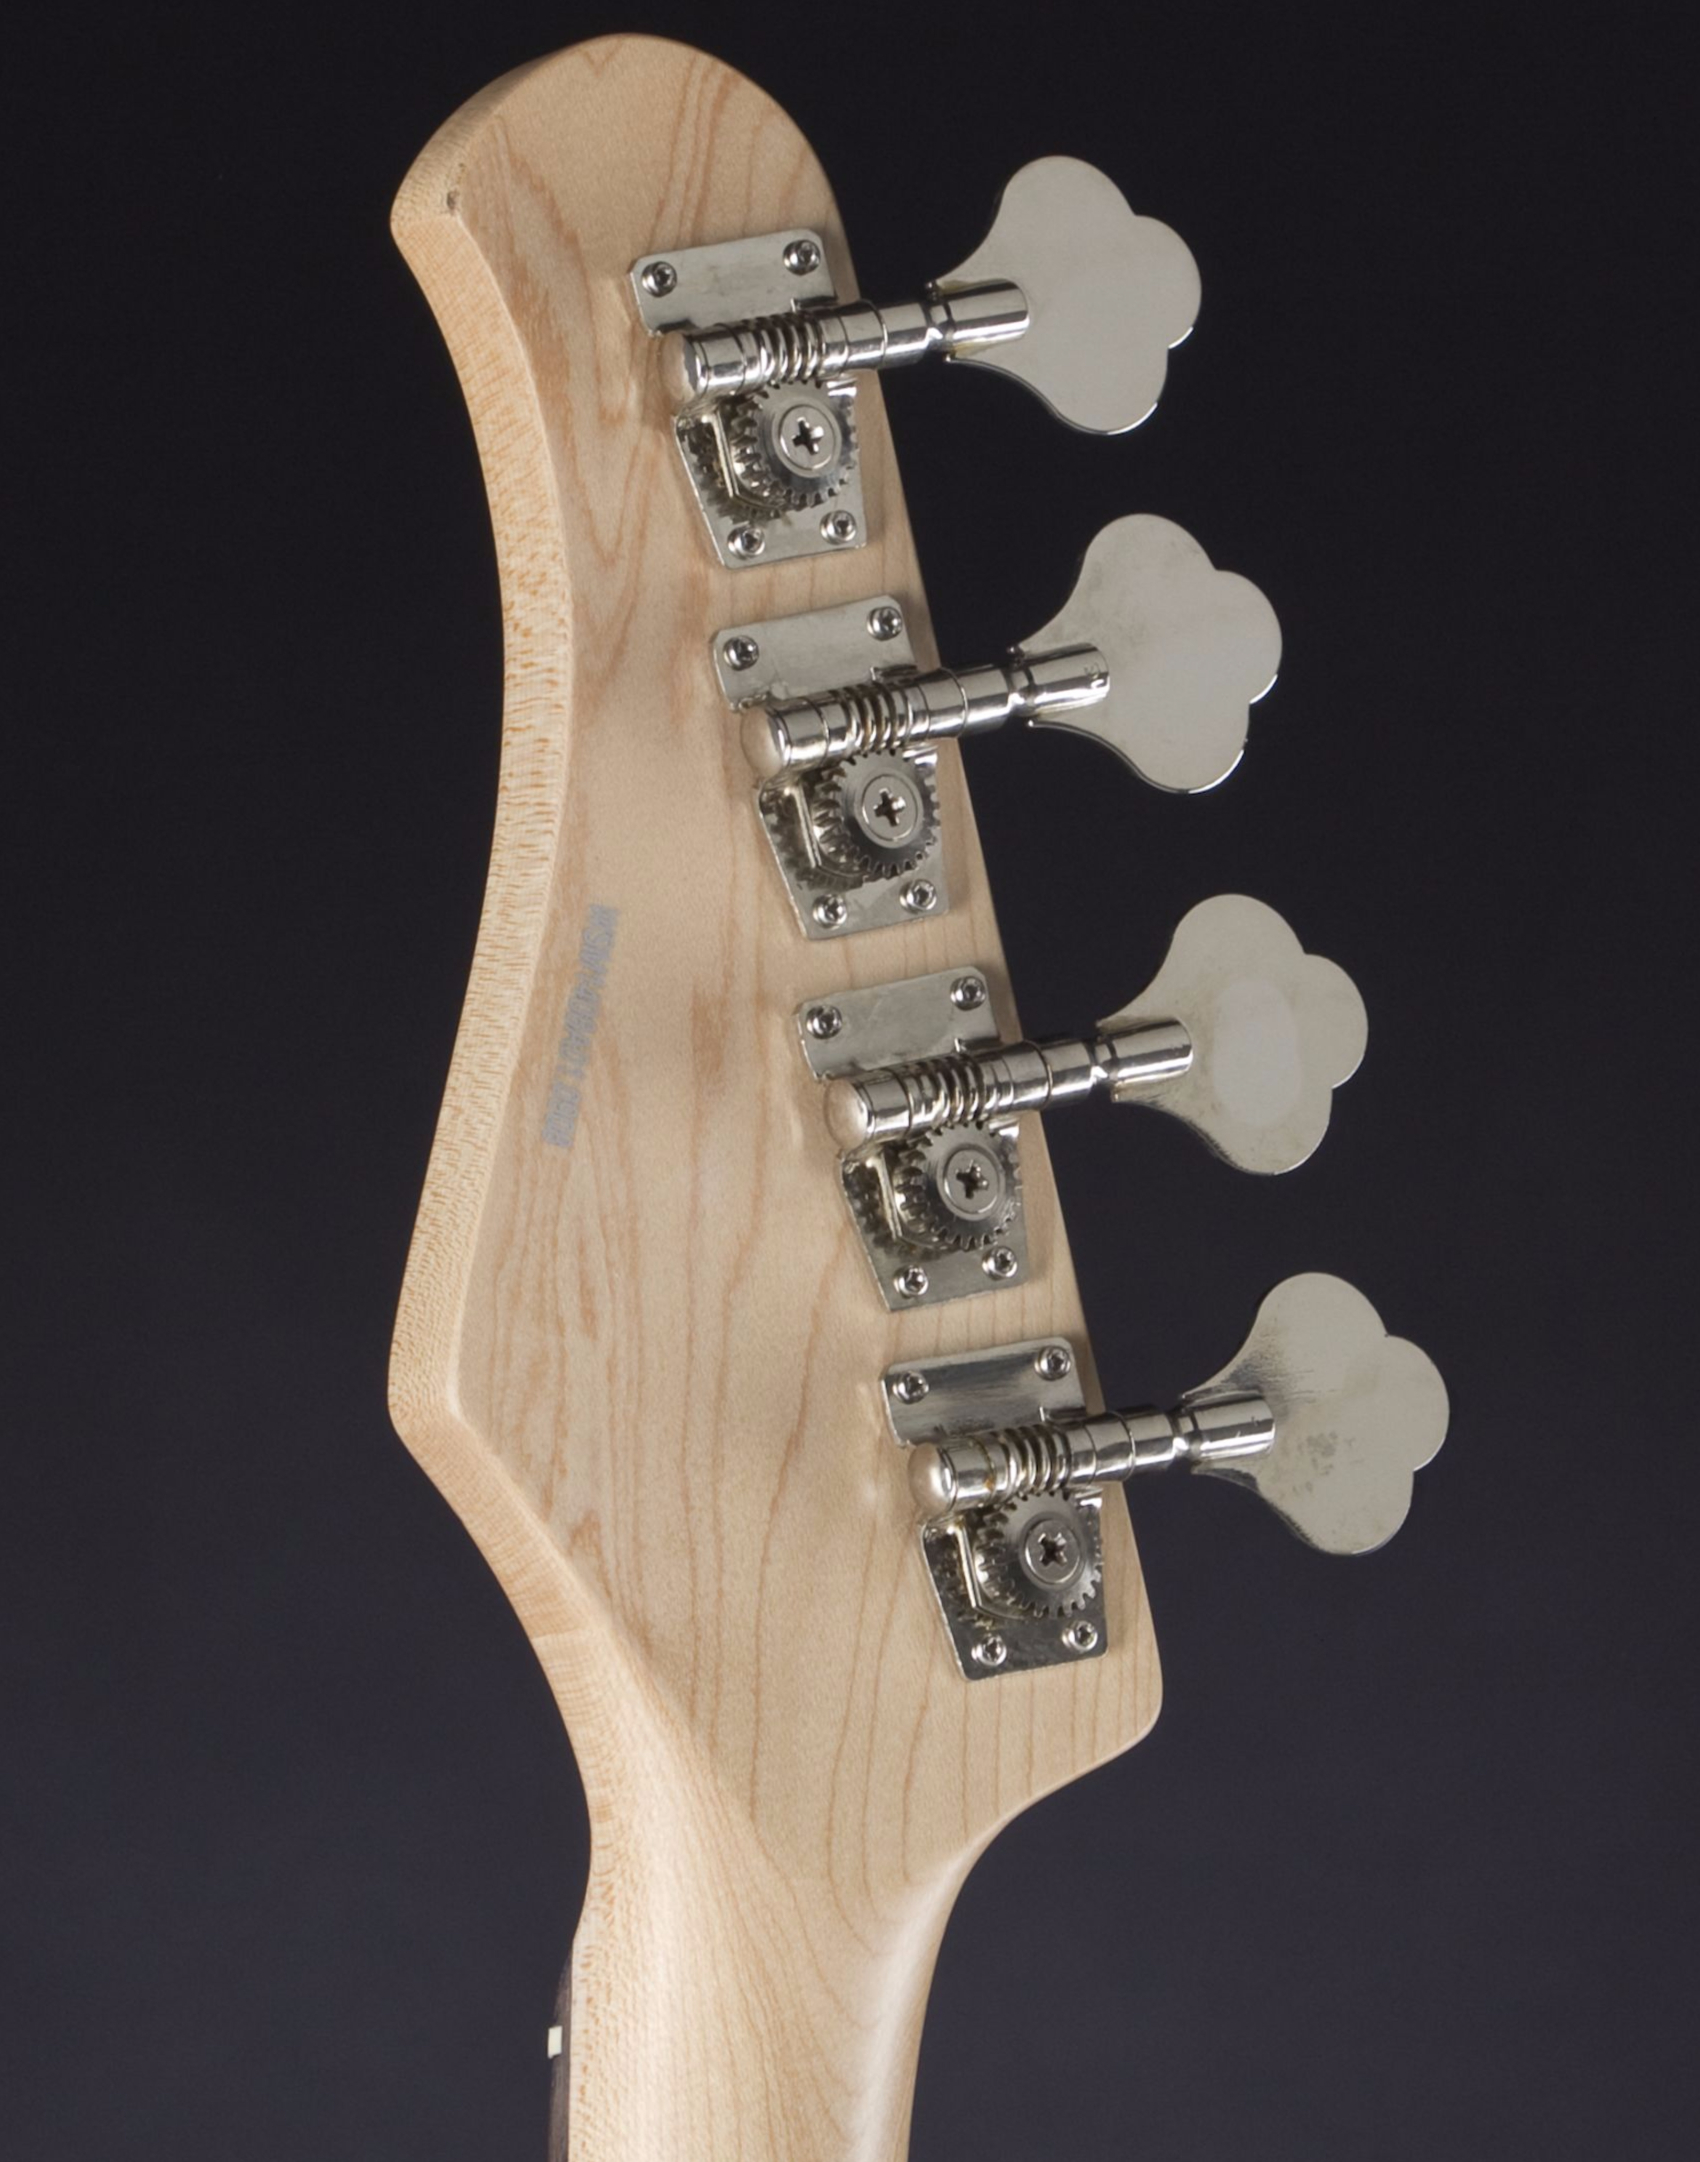 JACK & DANNY JB Mini STBL Headstock Detail